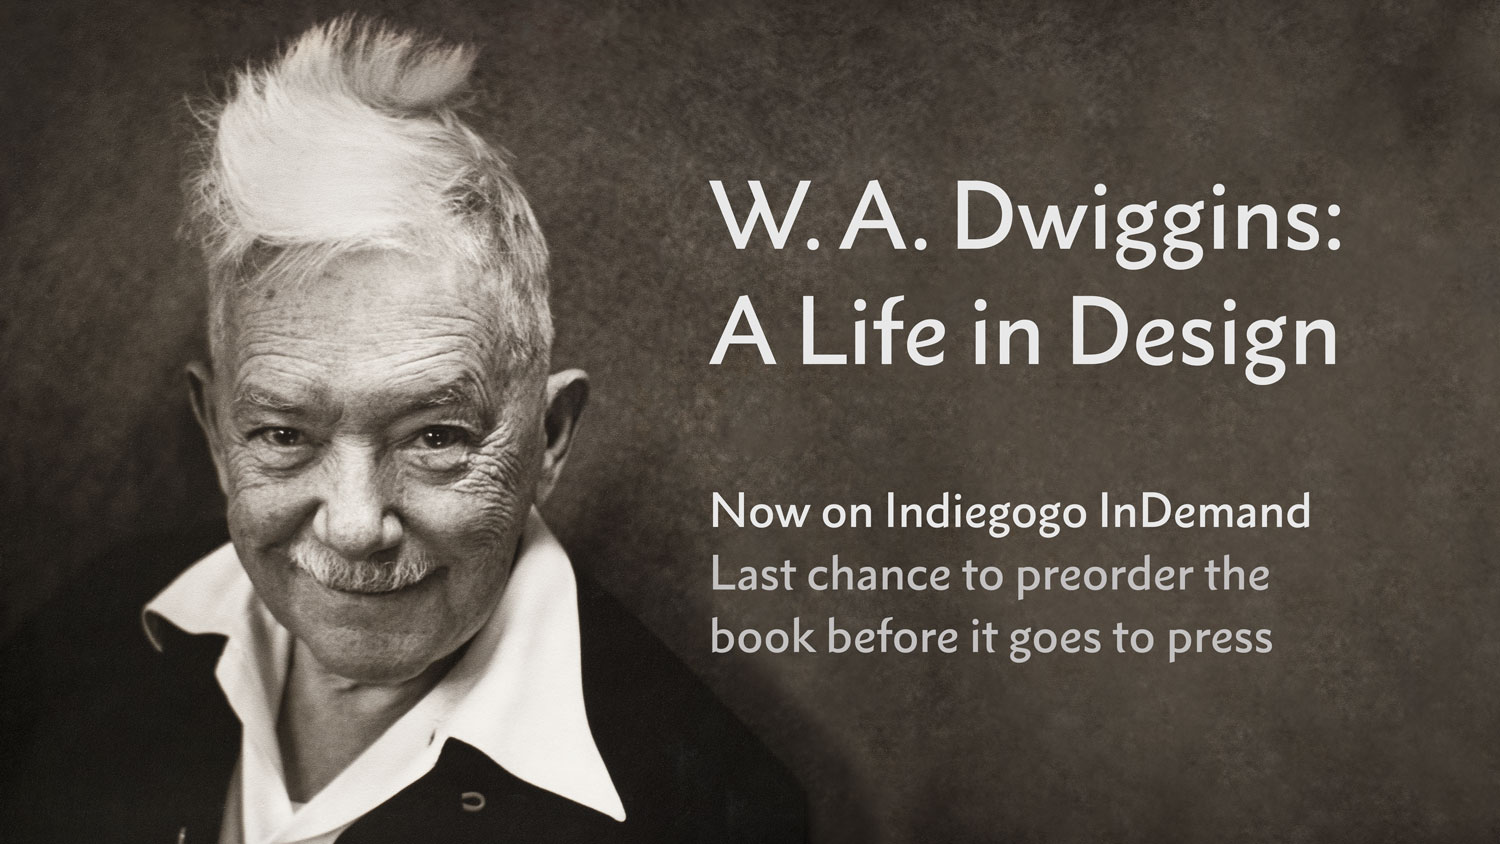 """W. A. Dwiggins: A Life in Design"" now on Indiegogo InDemand"